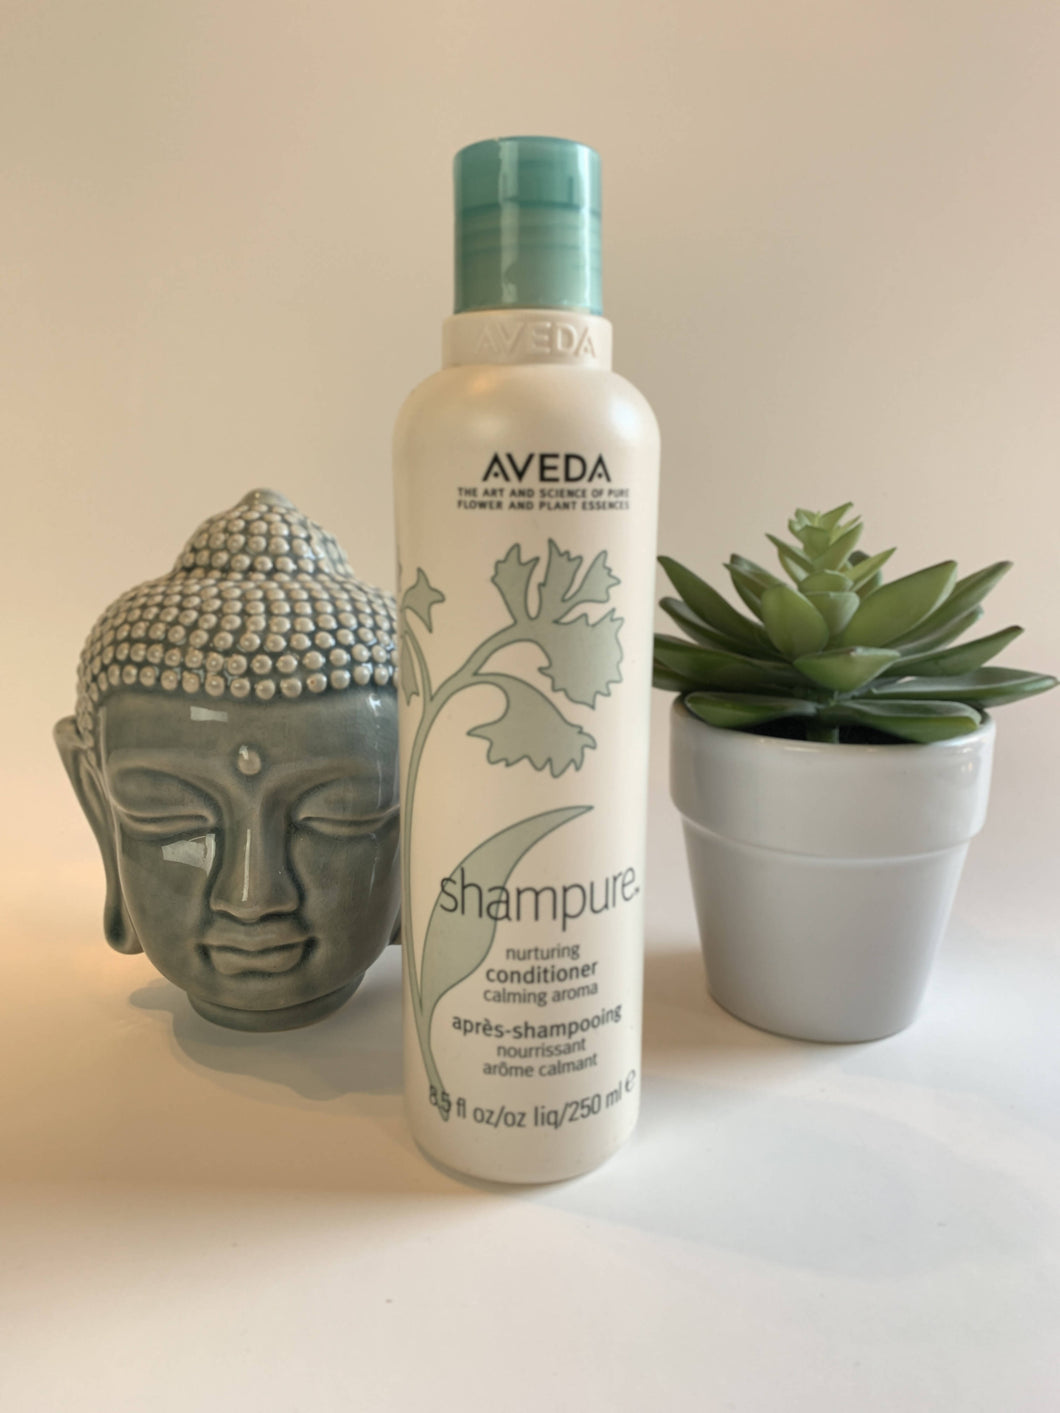 Aveda Shampure Nurturing Conditioner 250ml